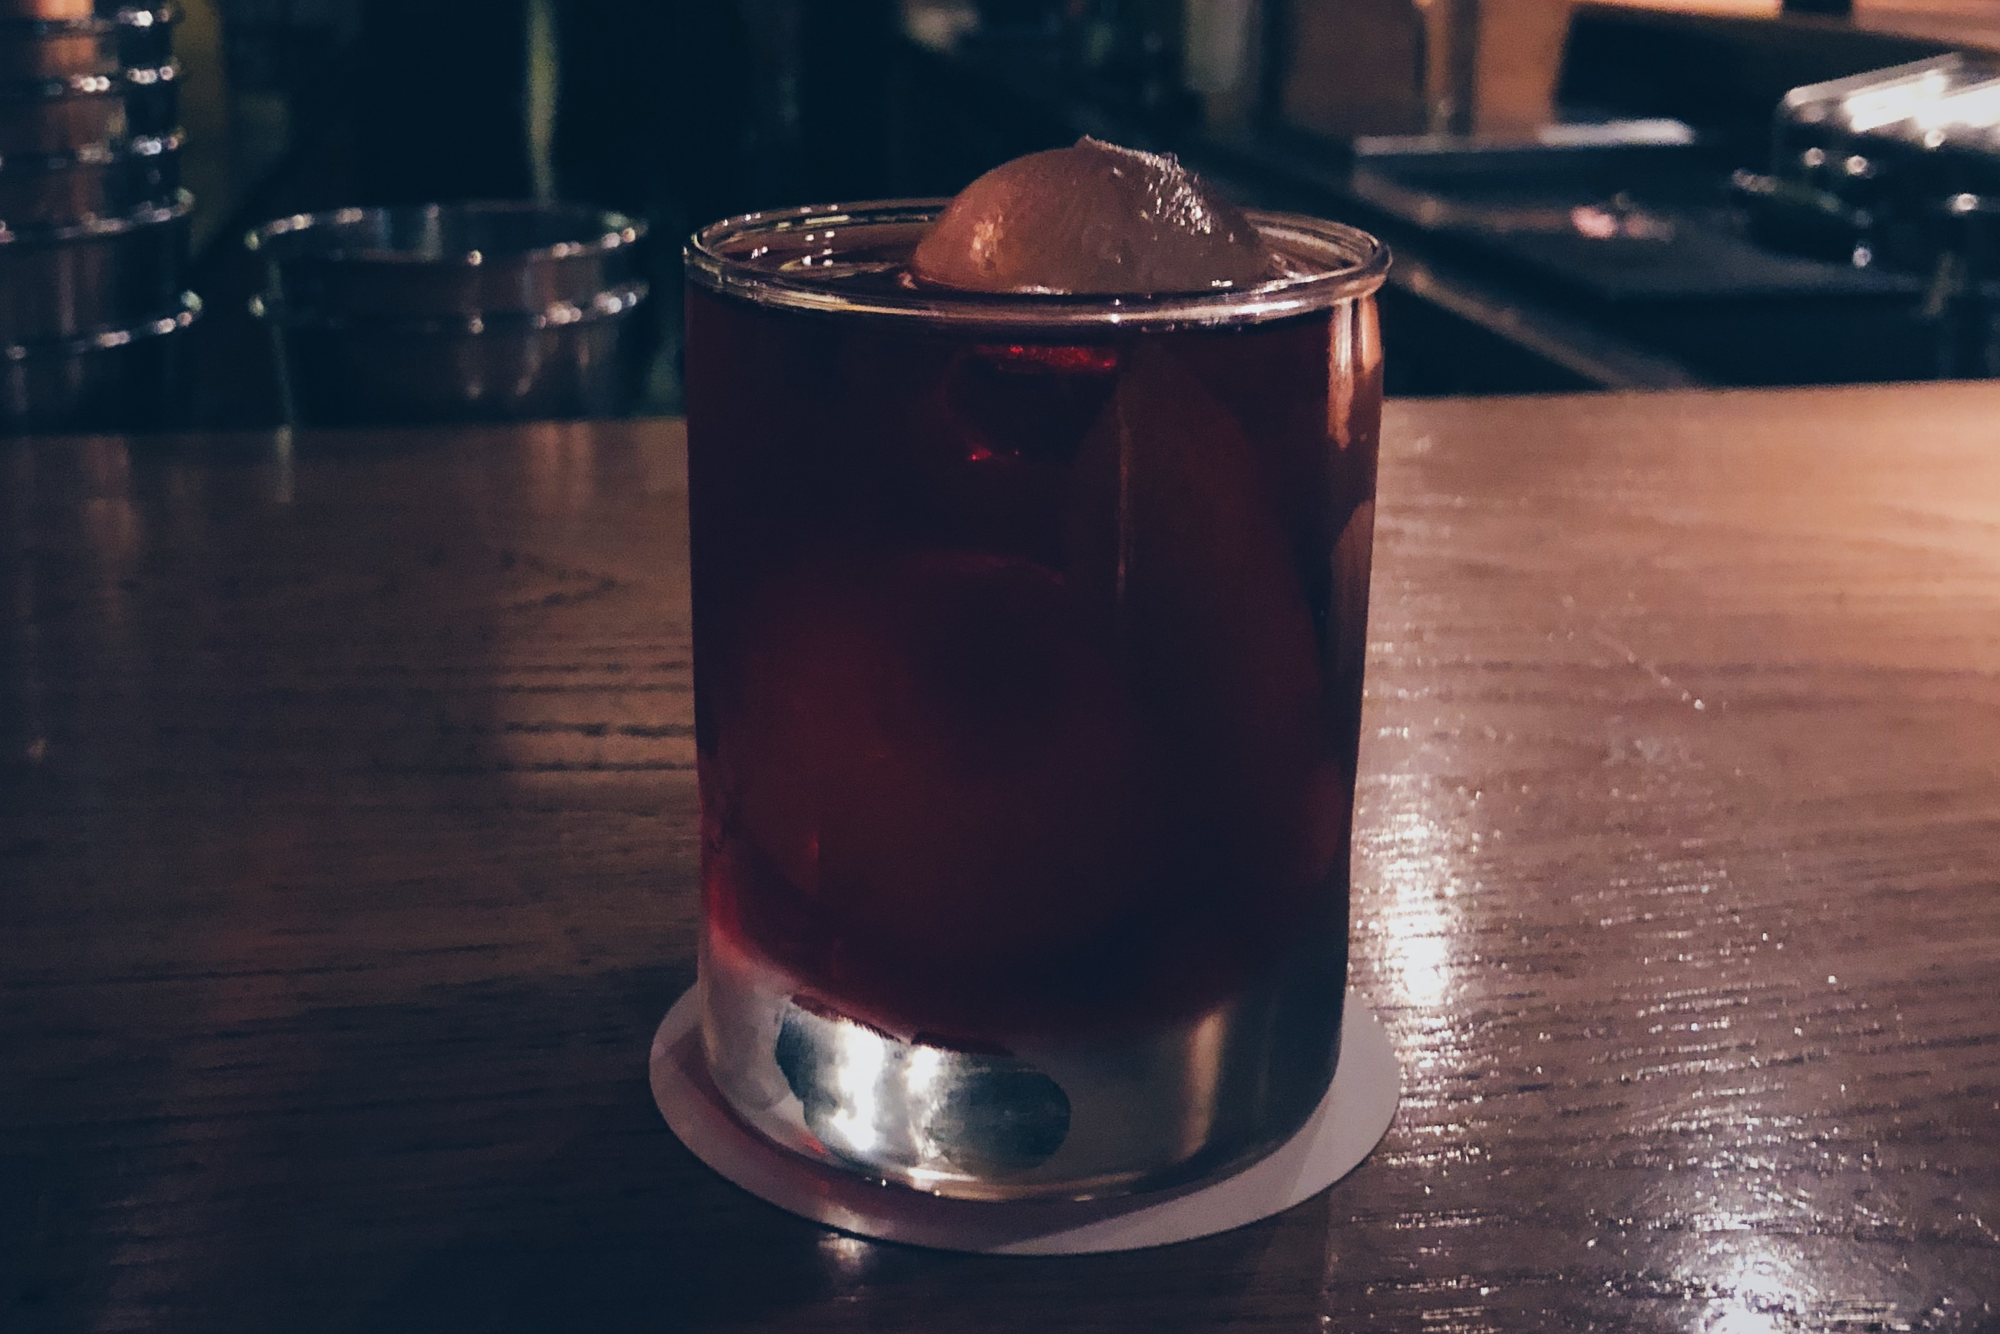 The Negroni Teaser